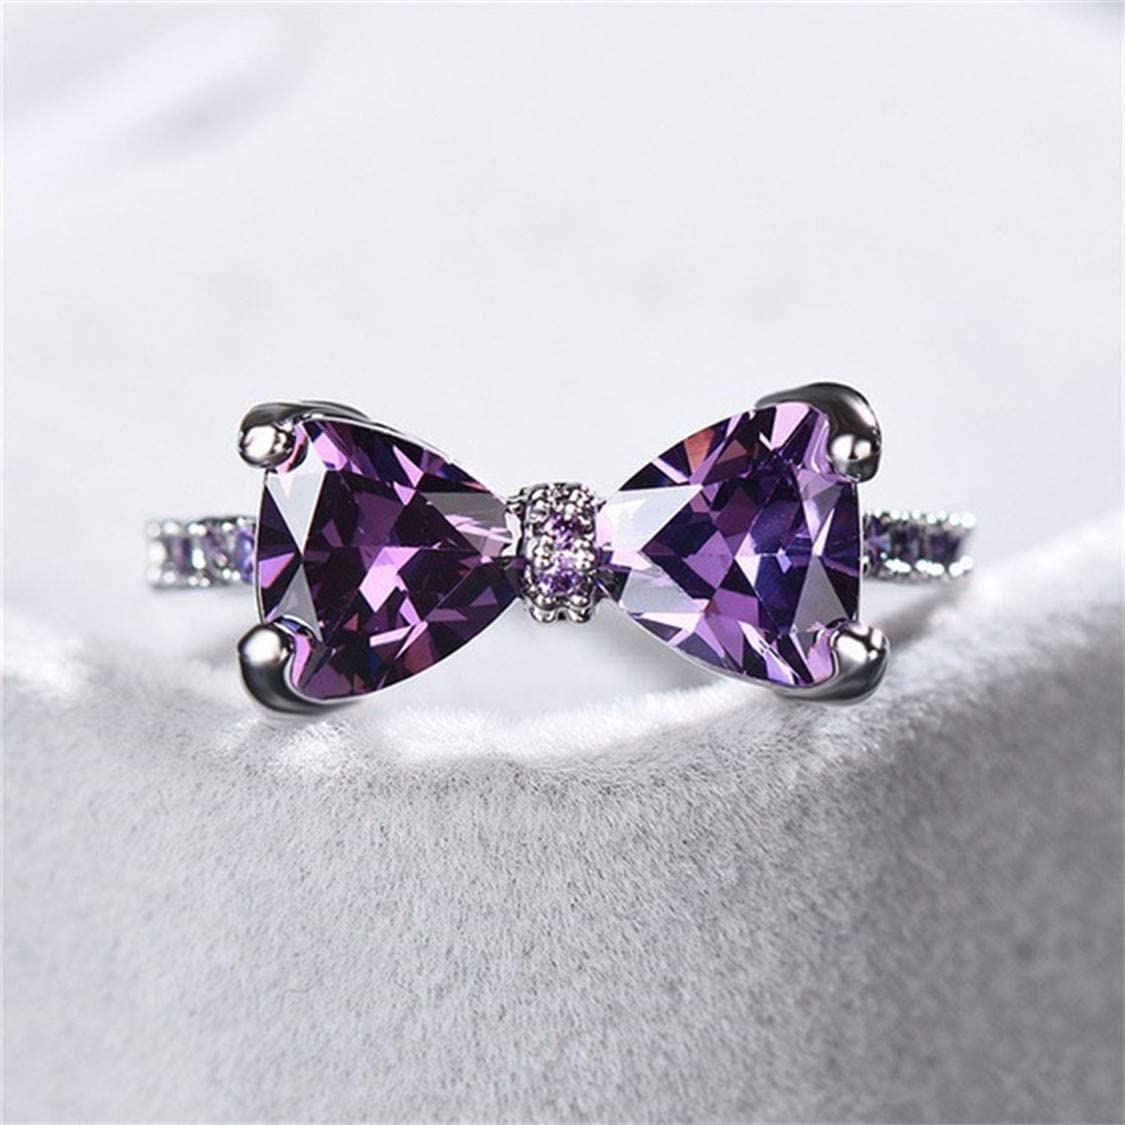 Idiytip Butterfly Knot Crystal Finger Rings Bow Rhinestone Midi Knuckle Ring Elegant Jewelry Accessories Party Decor,Size 6